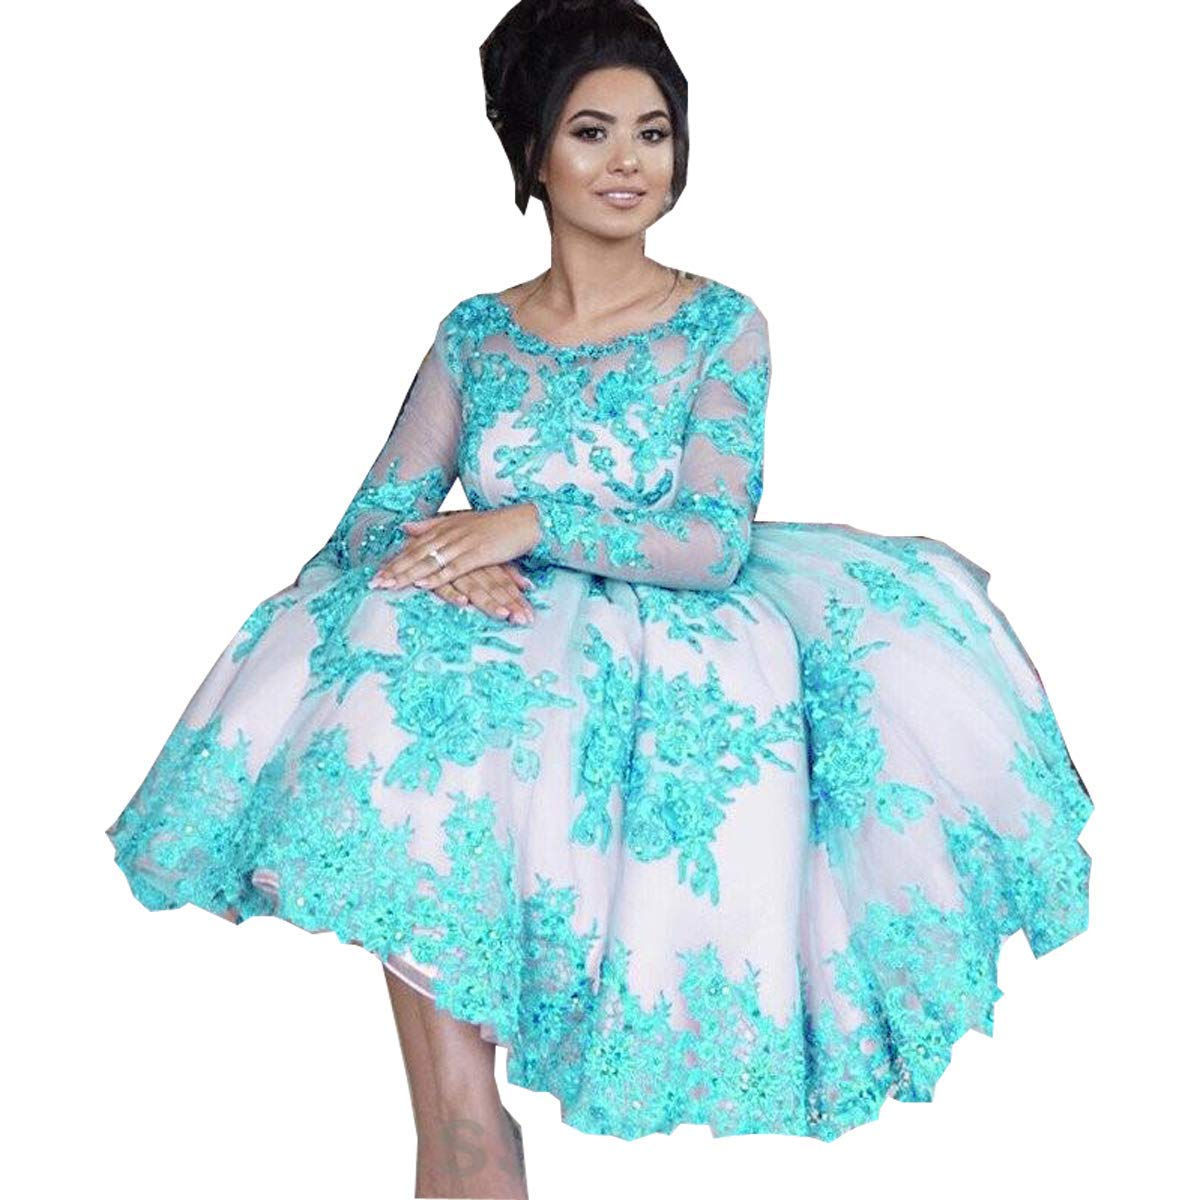 80c00e2f265 Graceprom Women s Lace Appliques Tea Length Prom Dresses Long Sleeves Party  Dresses Formal Gown Royal Blue at Amazon Women s Clothing store